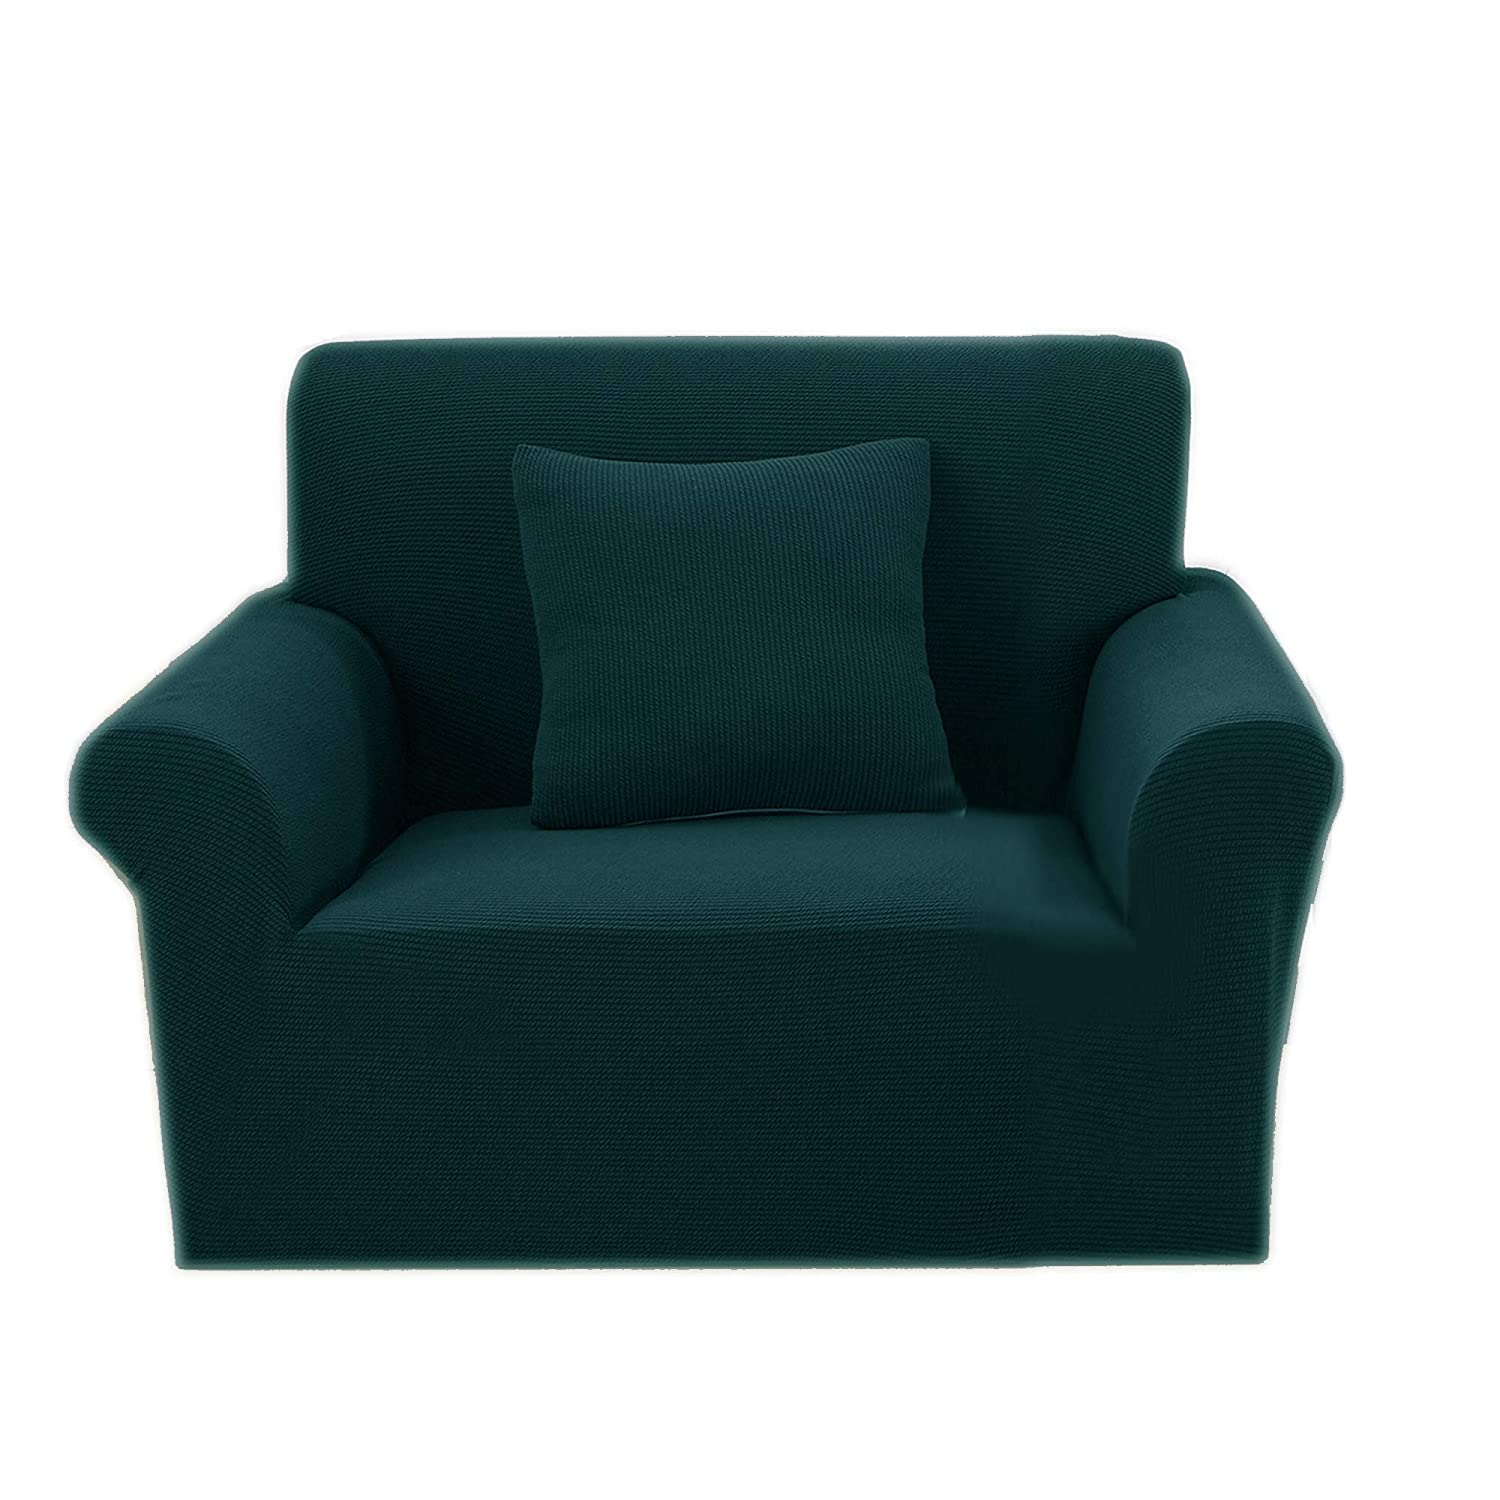 Premium Knit Chair Cover Elastic Slipcover For Armchair Furniture Protector Dark Green